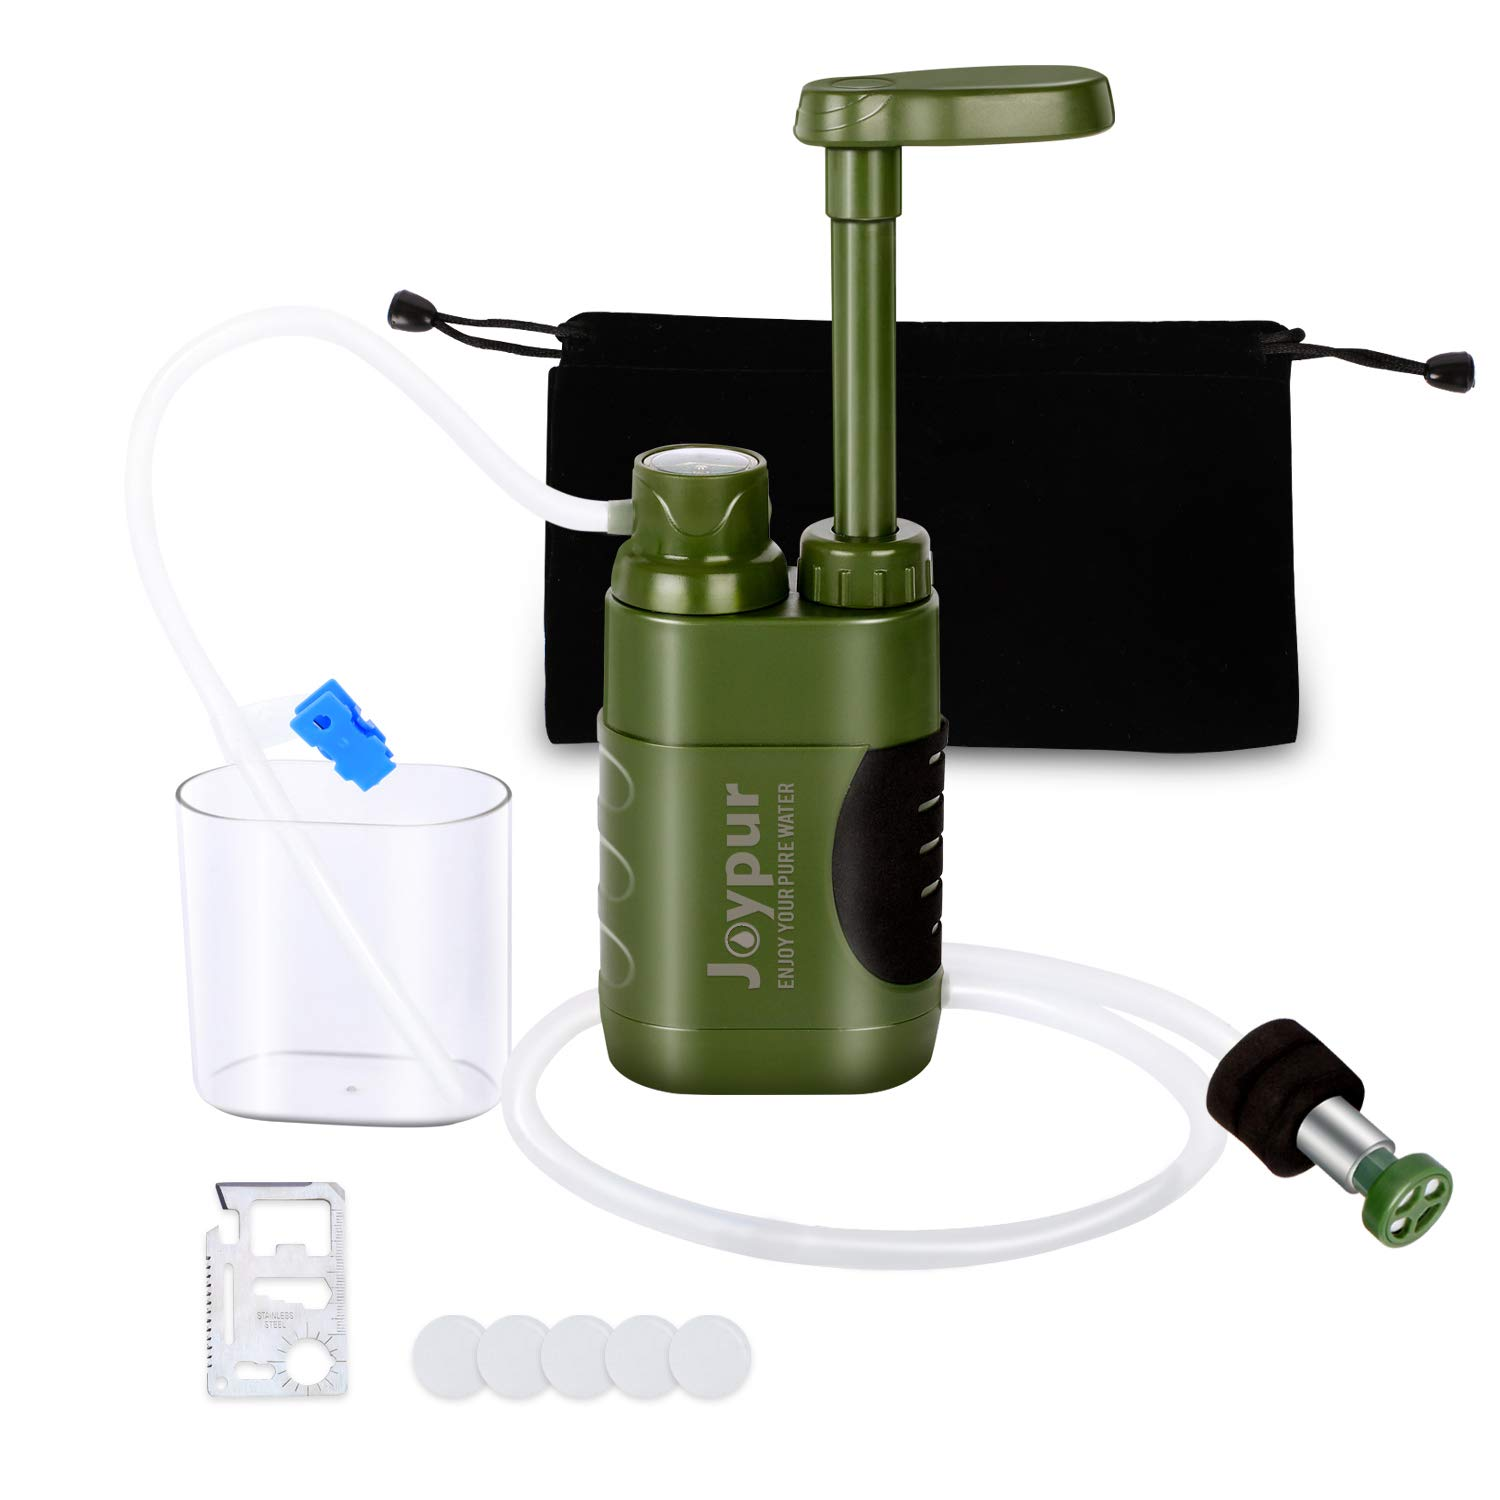 Joypur Portable Outdoor Water Purifier Camping 0.01 Micron Emergency Backpacking Water Filter for Hiking with 3-Stage Filter Pump